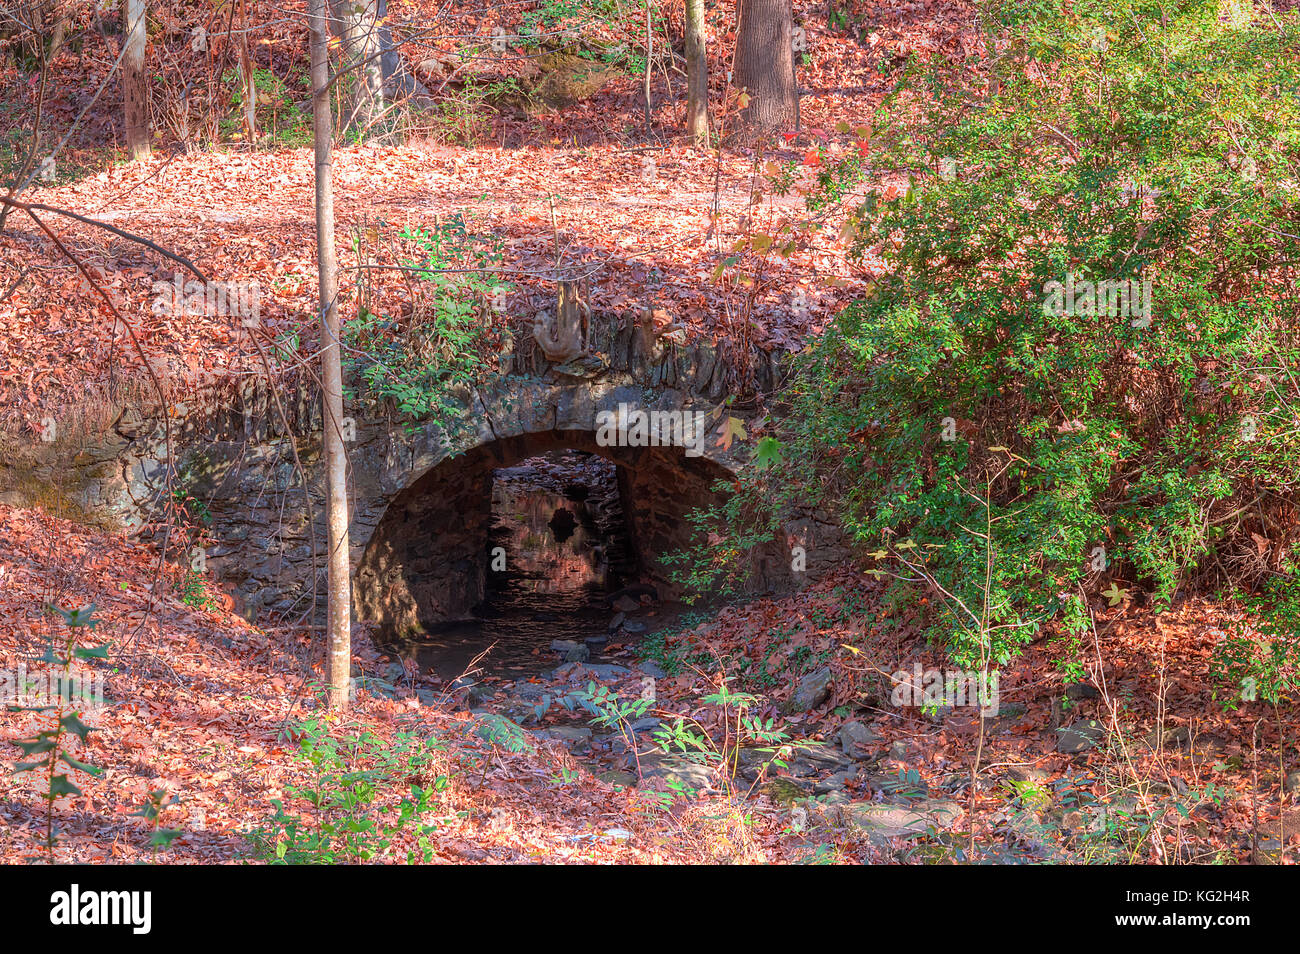 The stone bridge over the Ernest Richardson creek in the Lullwater Park in sunny autumn day, Atlanta, USA Stock Photo